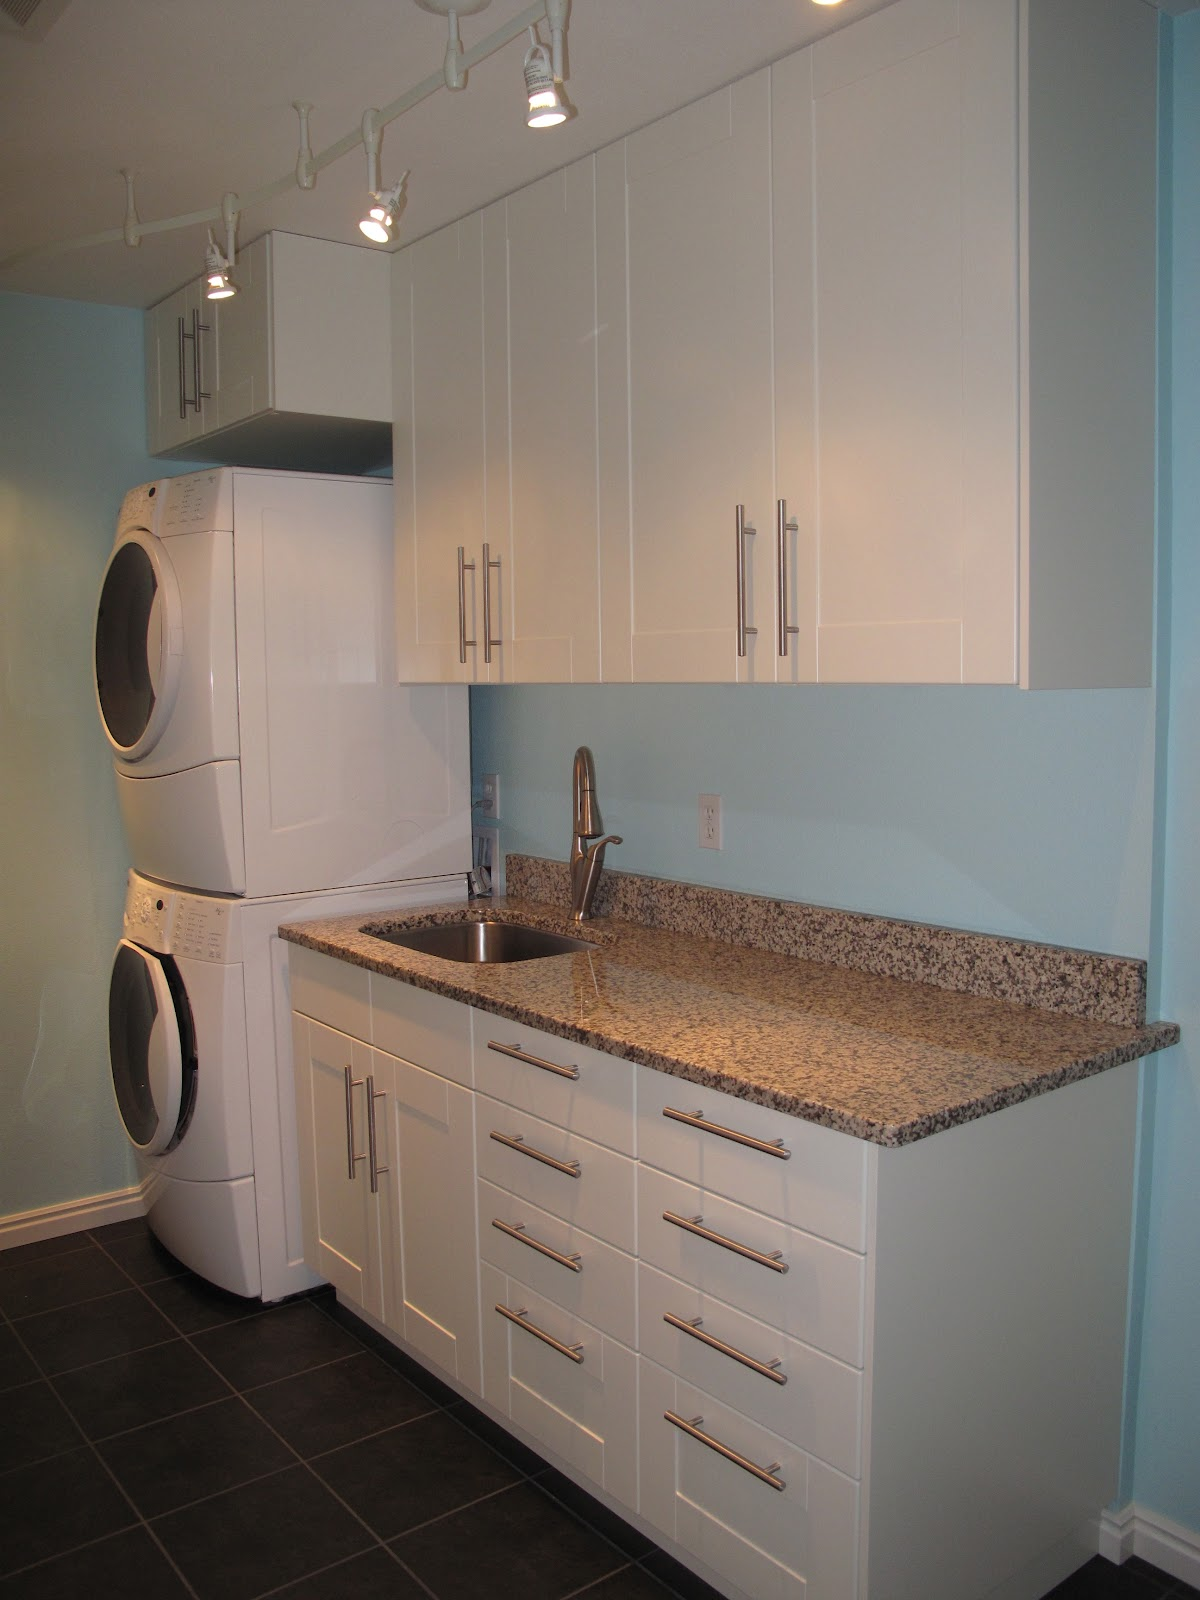 Small Cabinet System With Granite Countertop And Sink Plus Faucet For A  Laundry Room A Washing